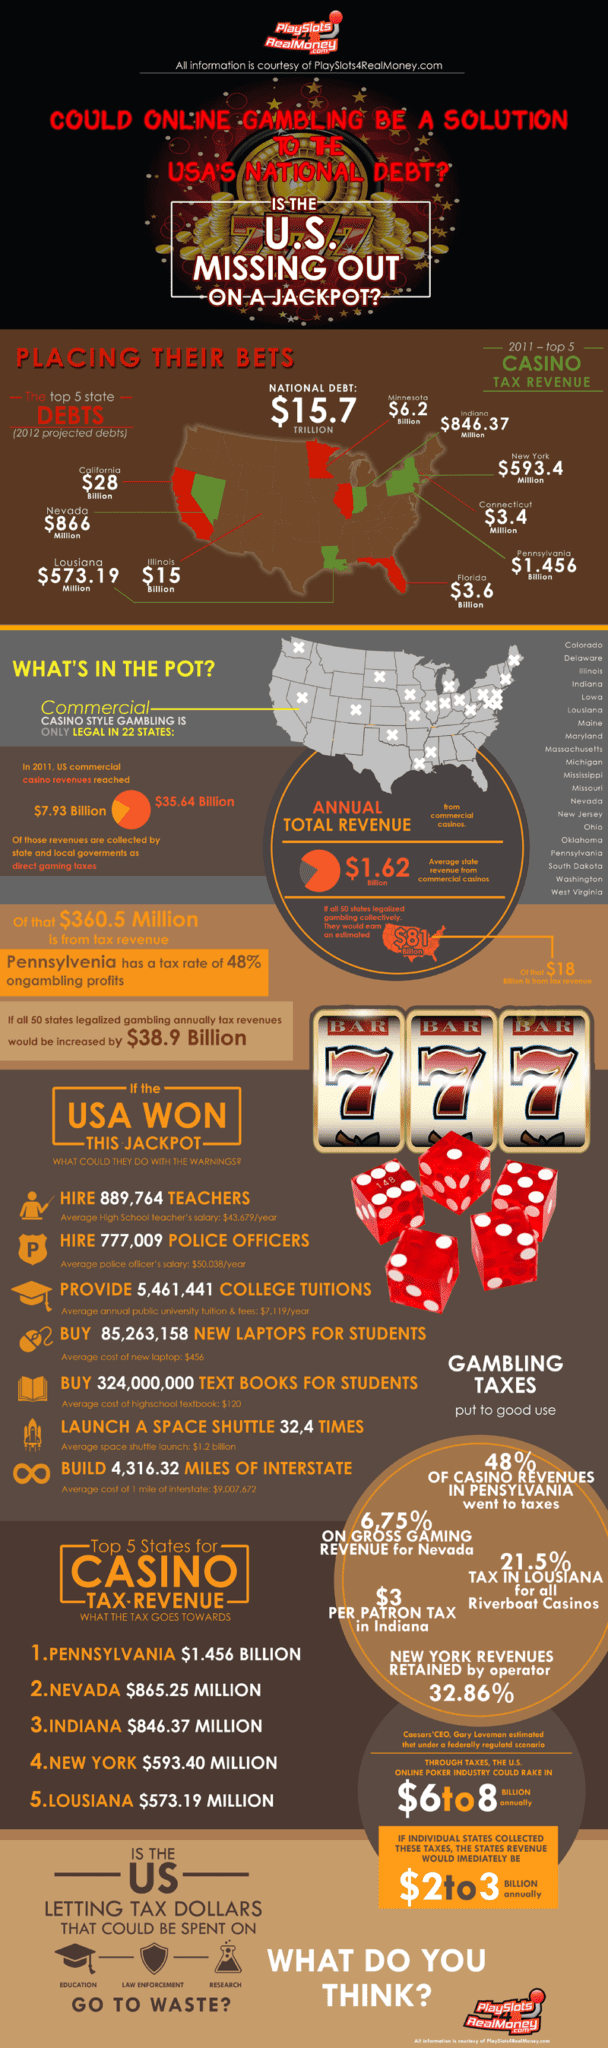 best casino online real money usa